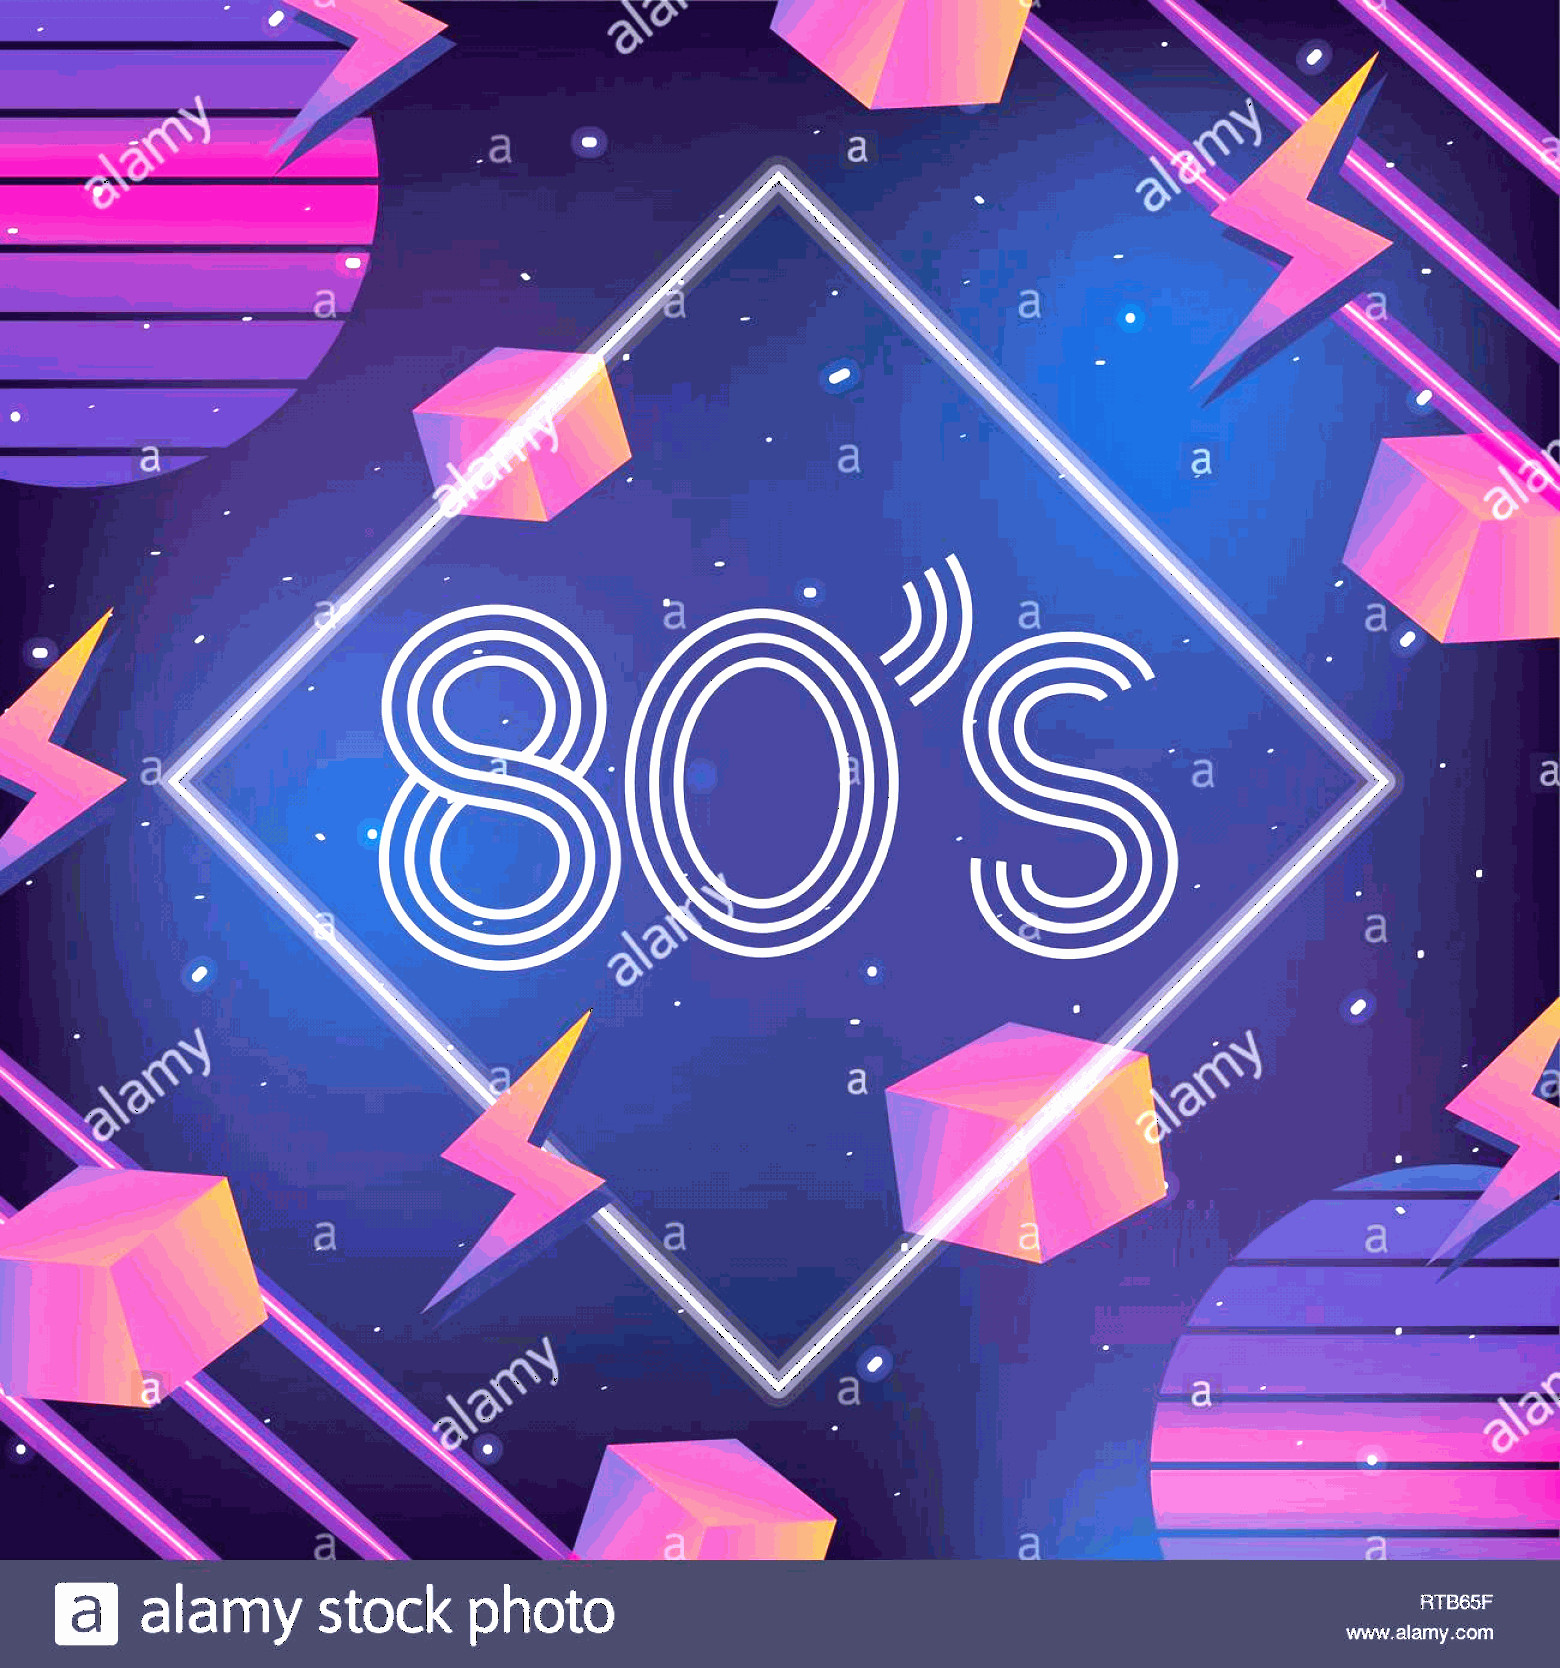 Vectorgraph 80s: Geometric Neon Style With S Graphic Image